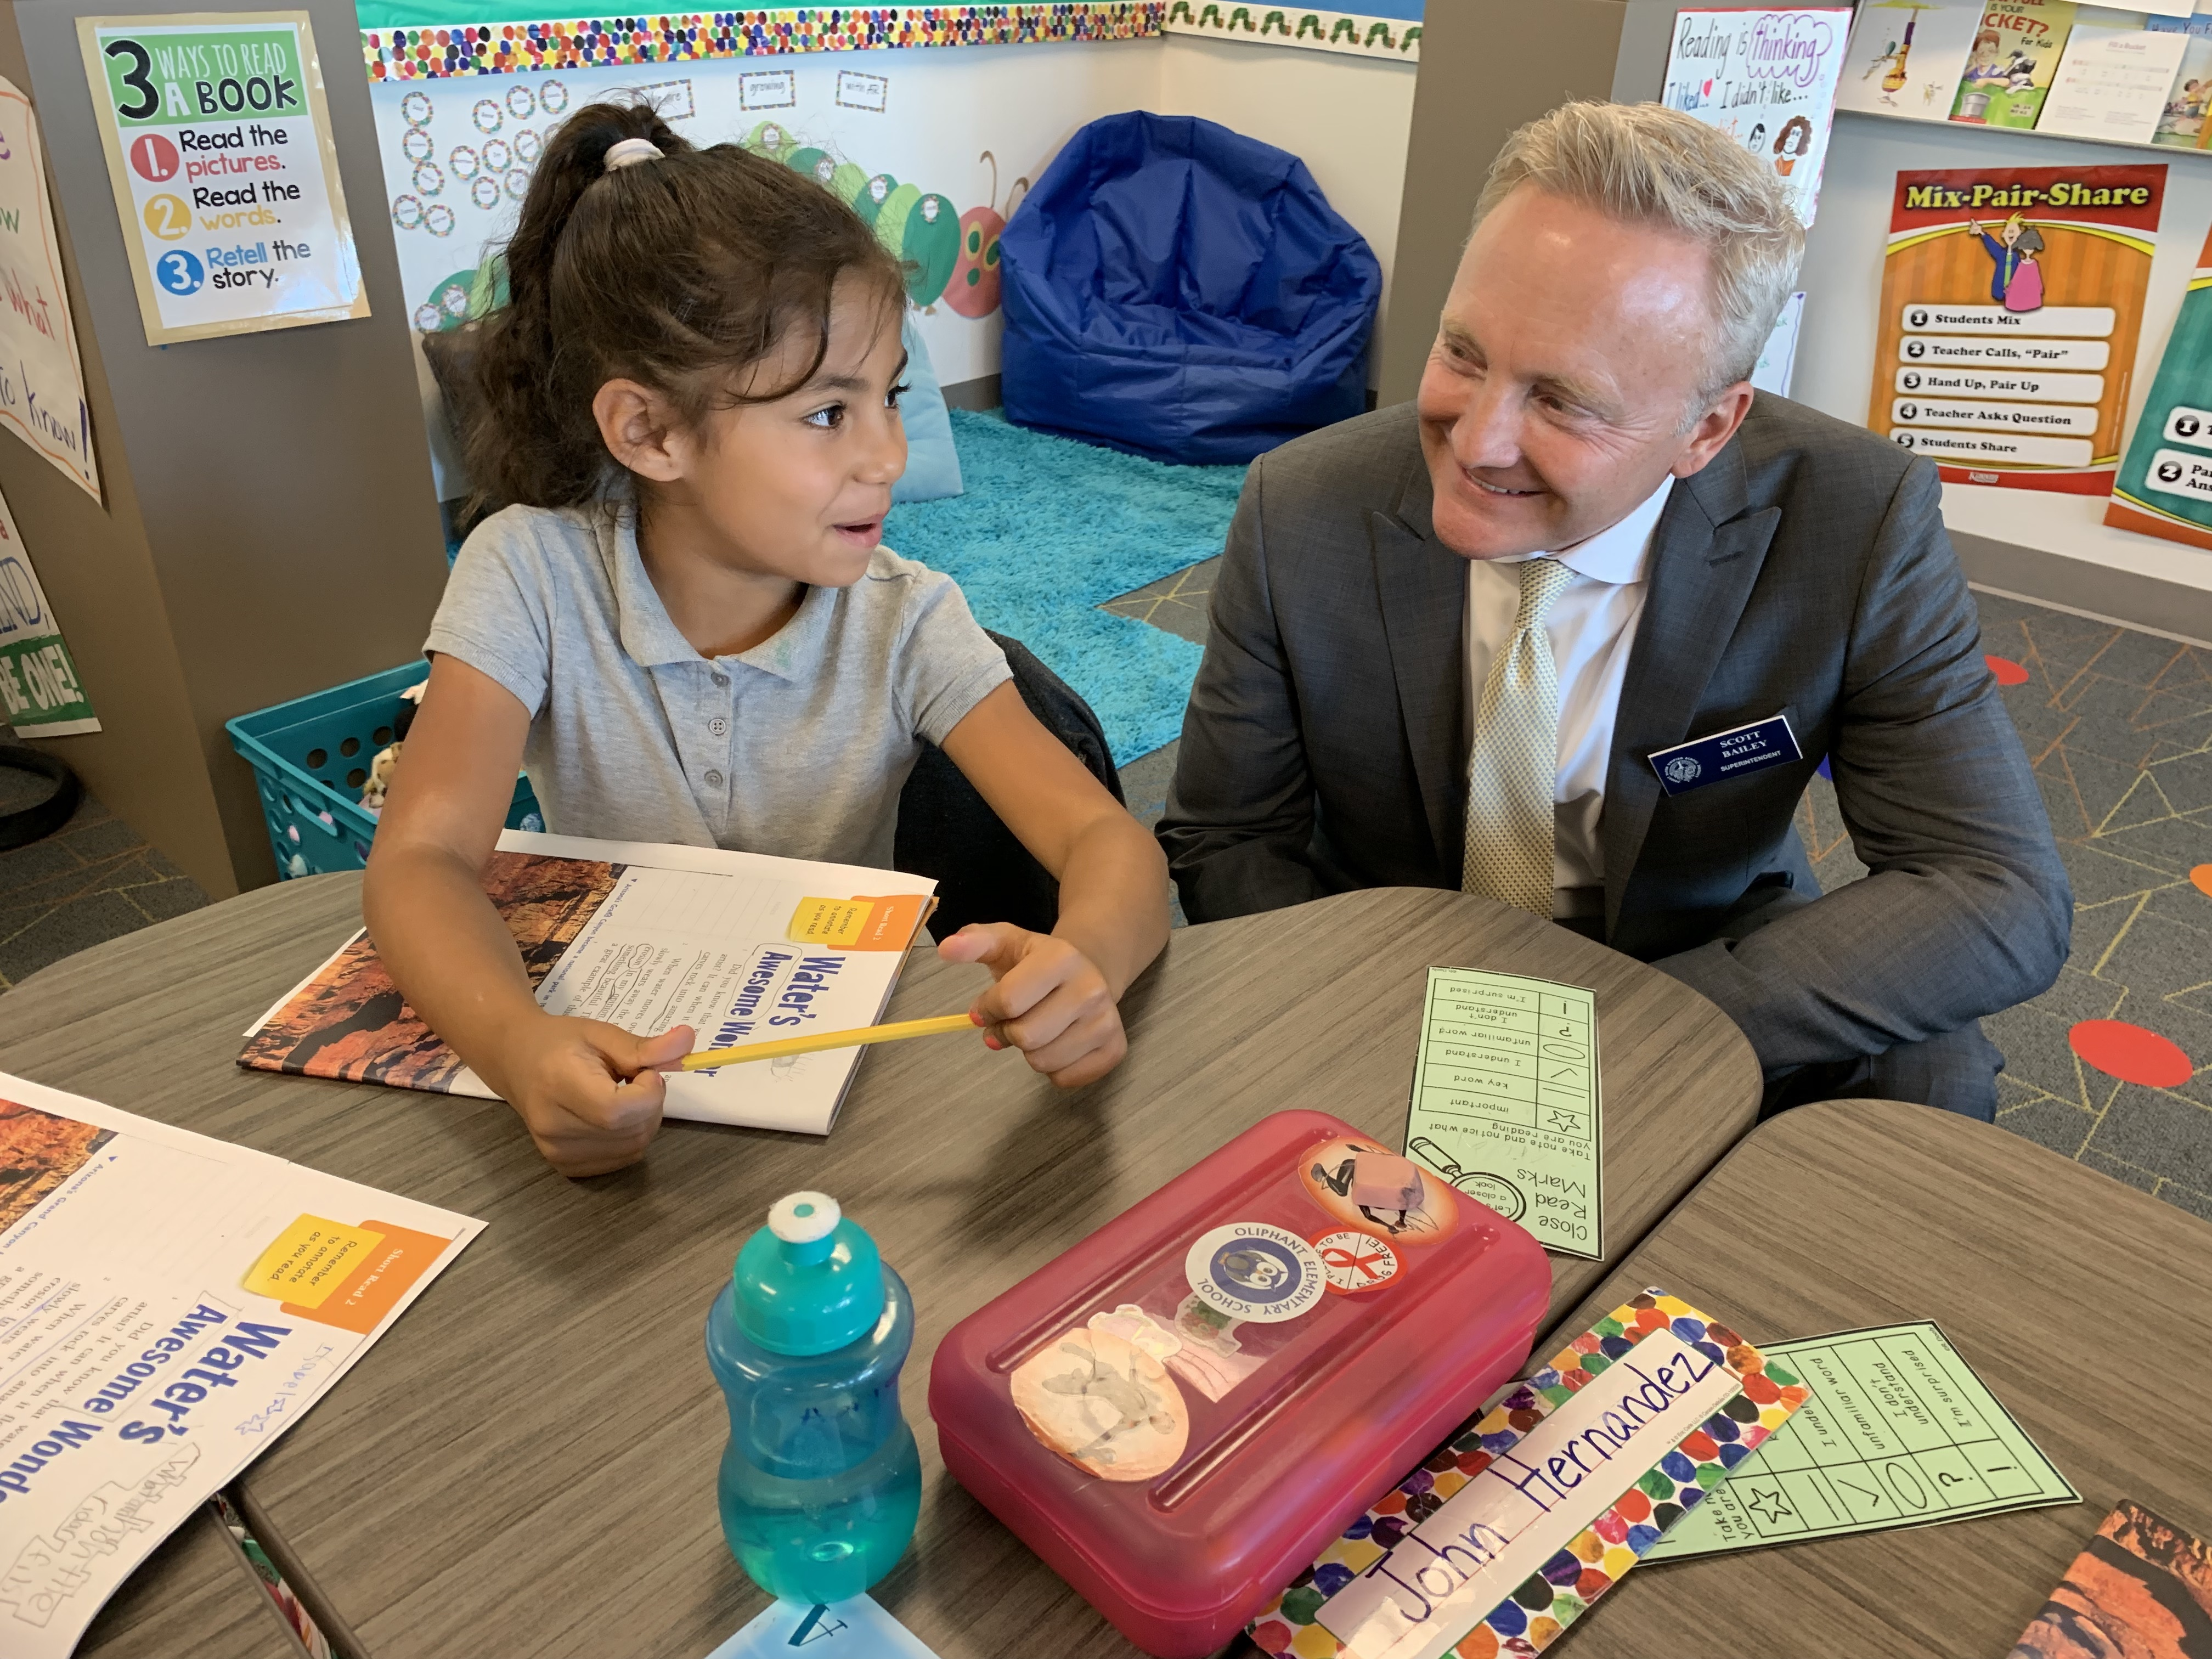 """Desert Sands USD Superintendent Scott Bailey says he relieves the stress of leadership by sitting down and talking with young students. They """"take you back to why you're here, to what it's all about."""""""